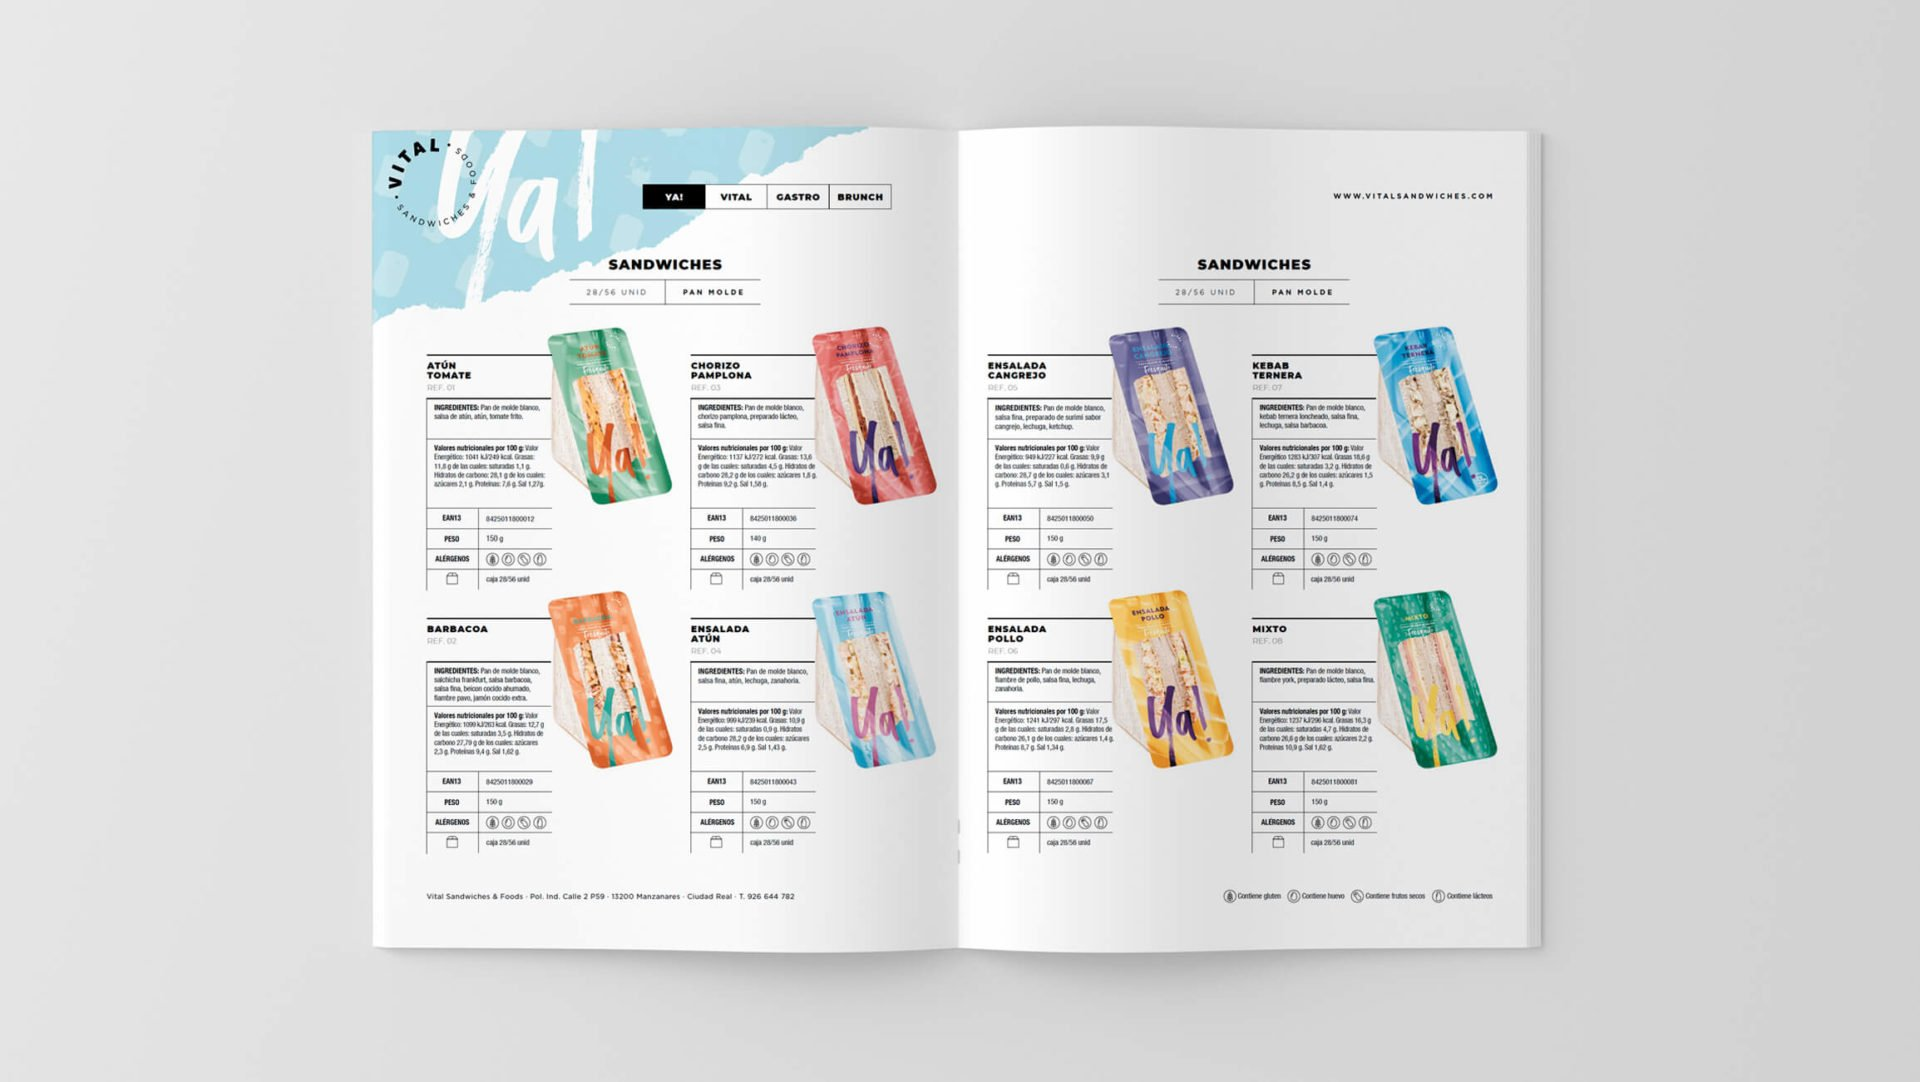 diseño-catalogo-producto-saludable-vital-sandwiches-and-foods-02